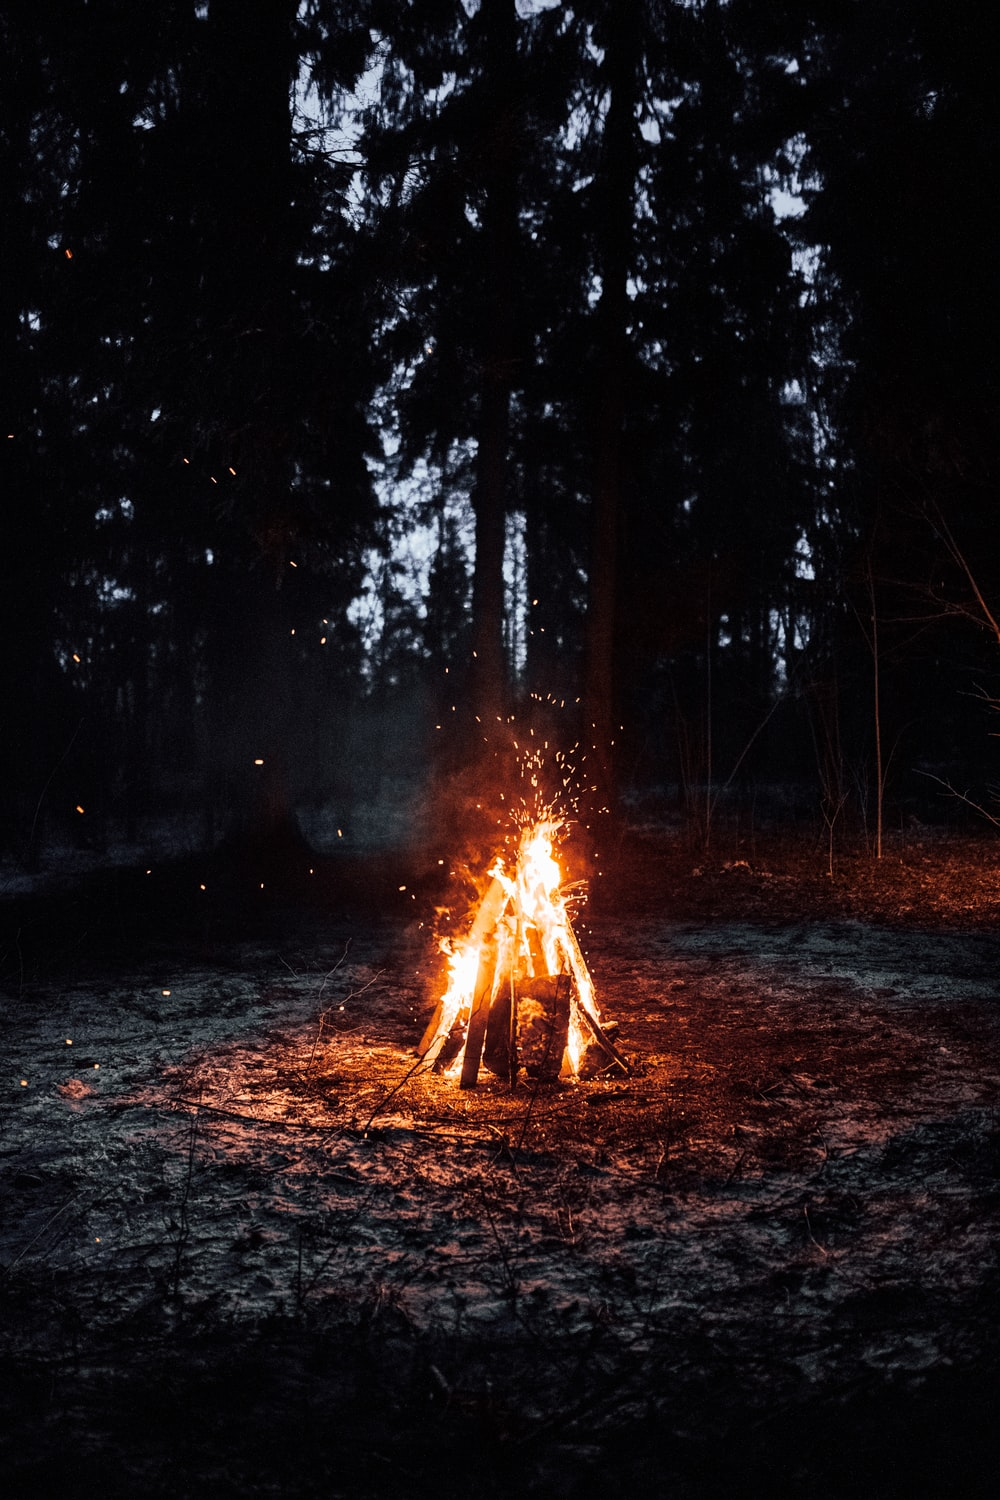 bonfire in forest during night time